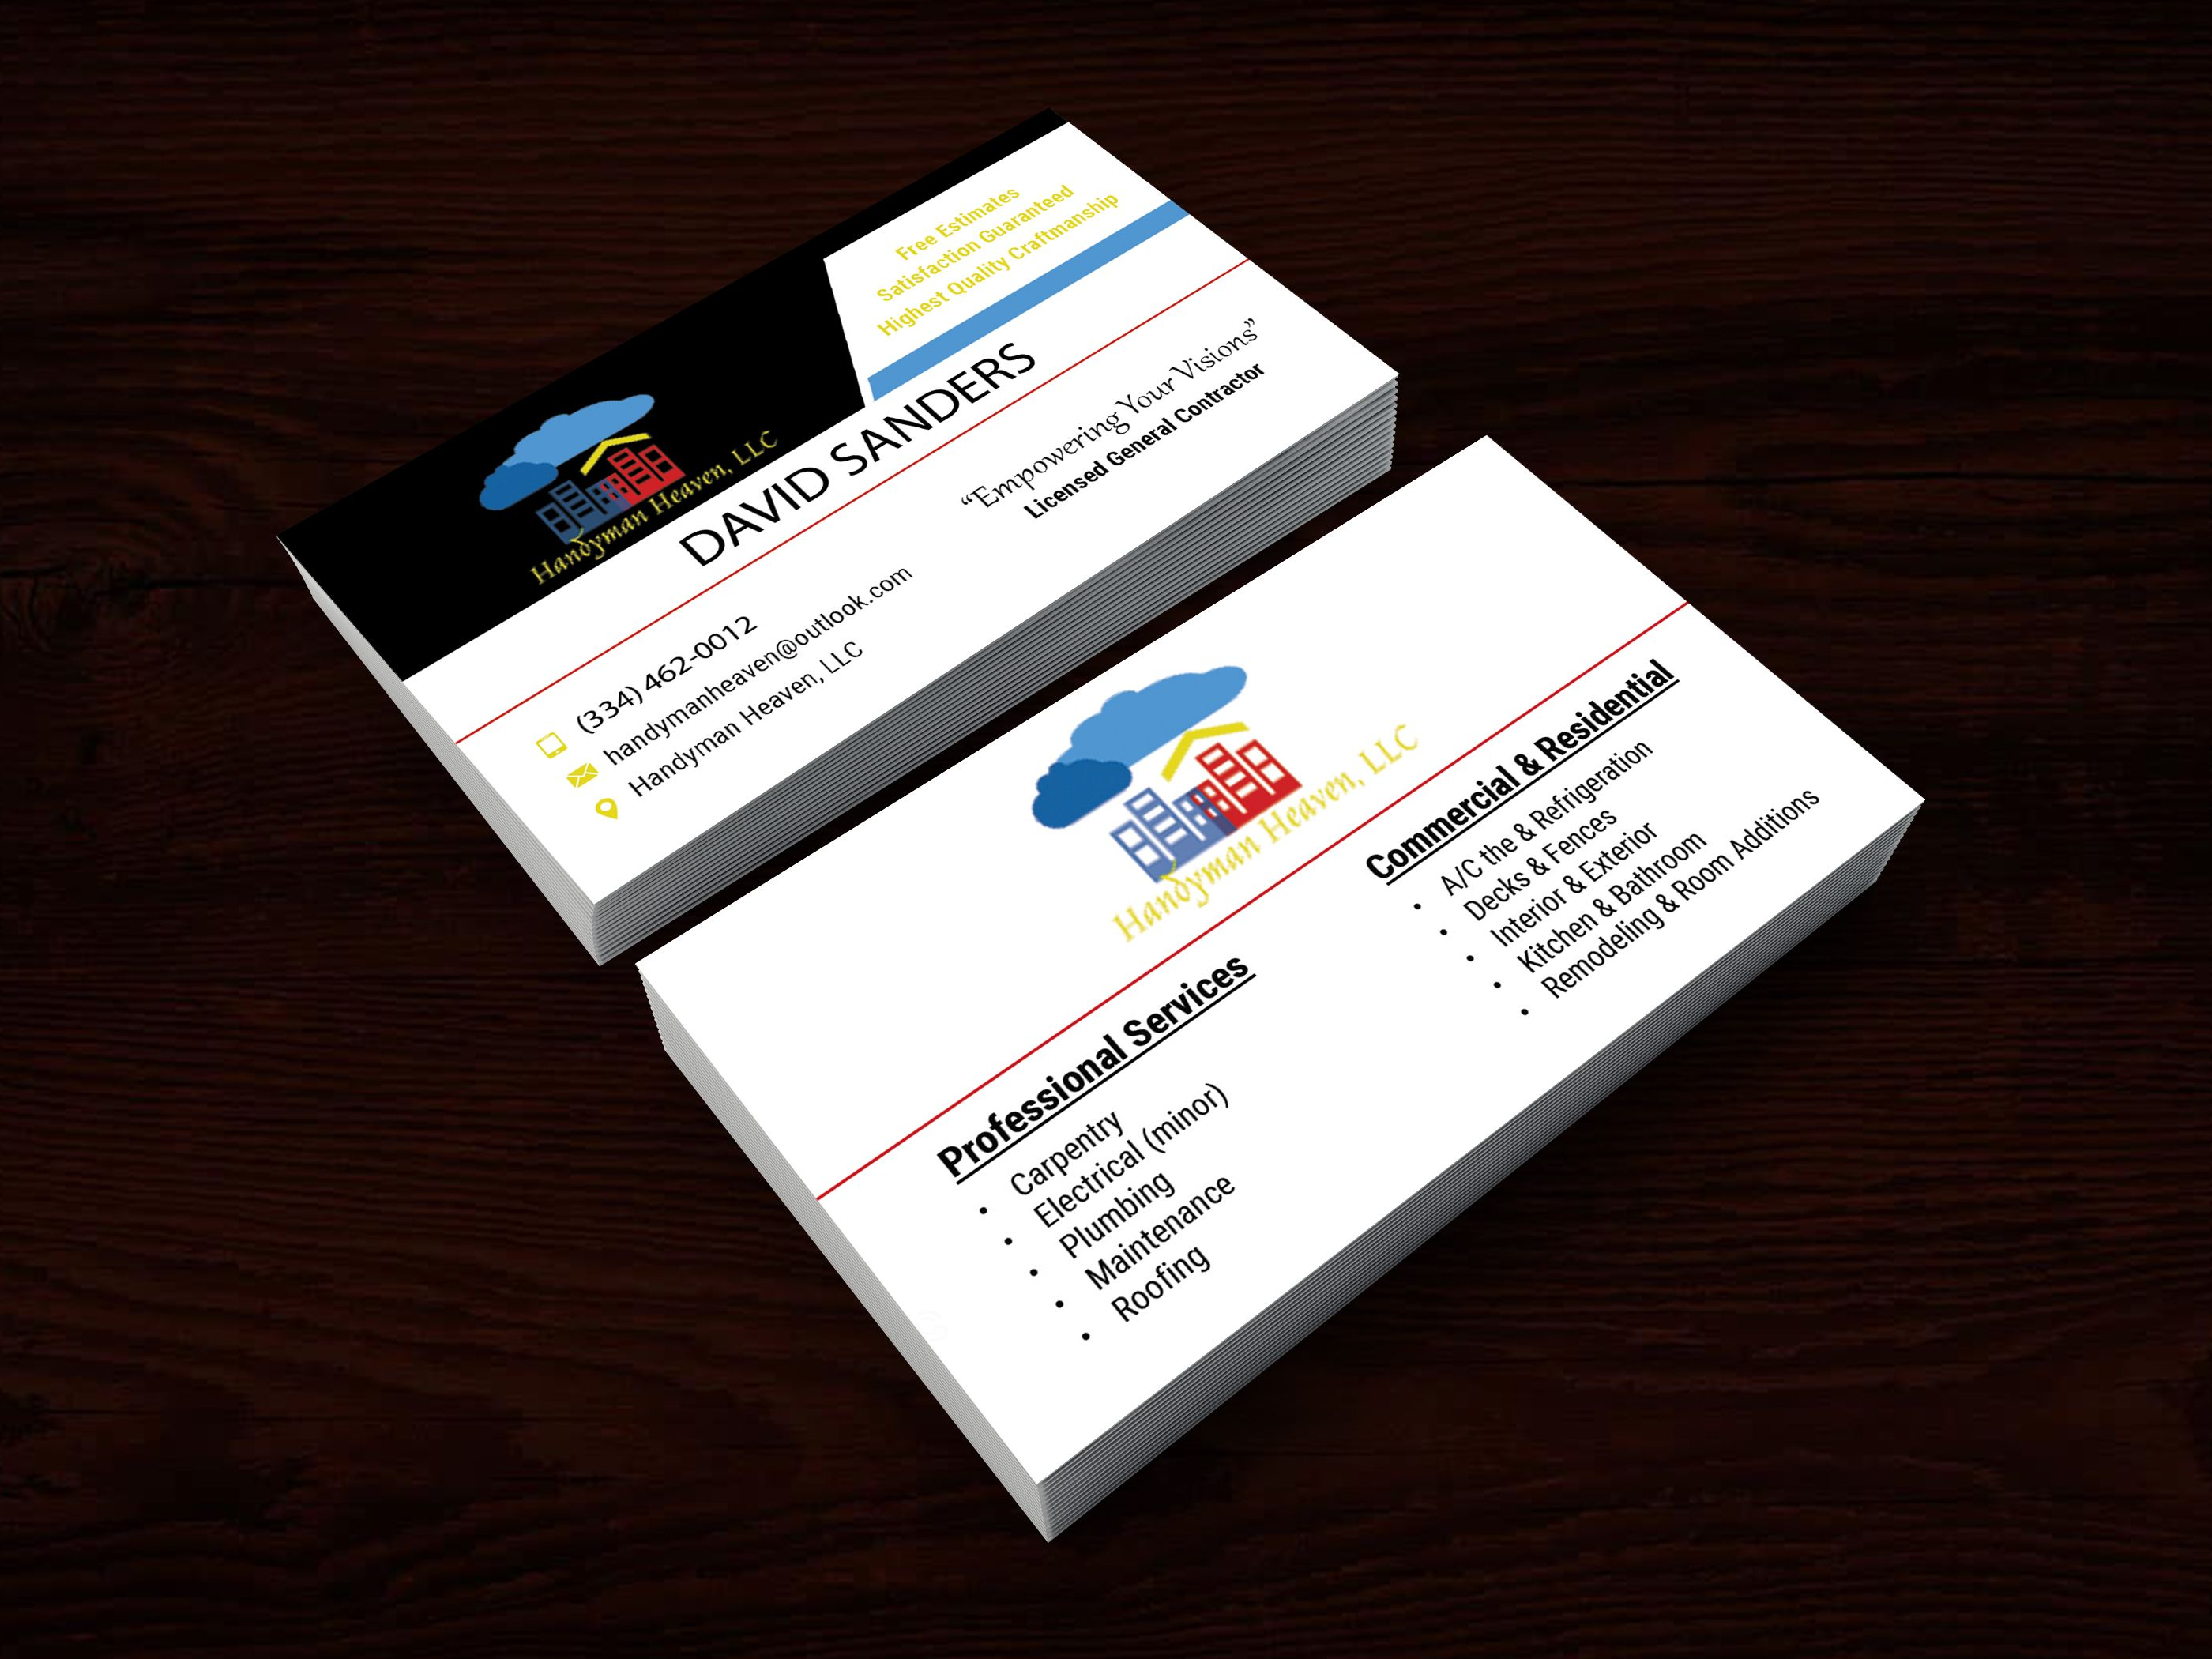 A Kumar07 I Will Do Professional Business Card And Business Card Design For 15 On Fiverr Com Business Card Design Professional Business Cards Business Cards Creative